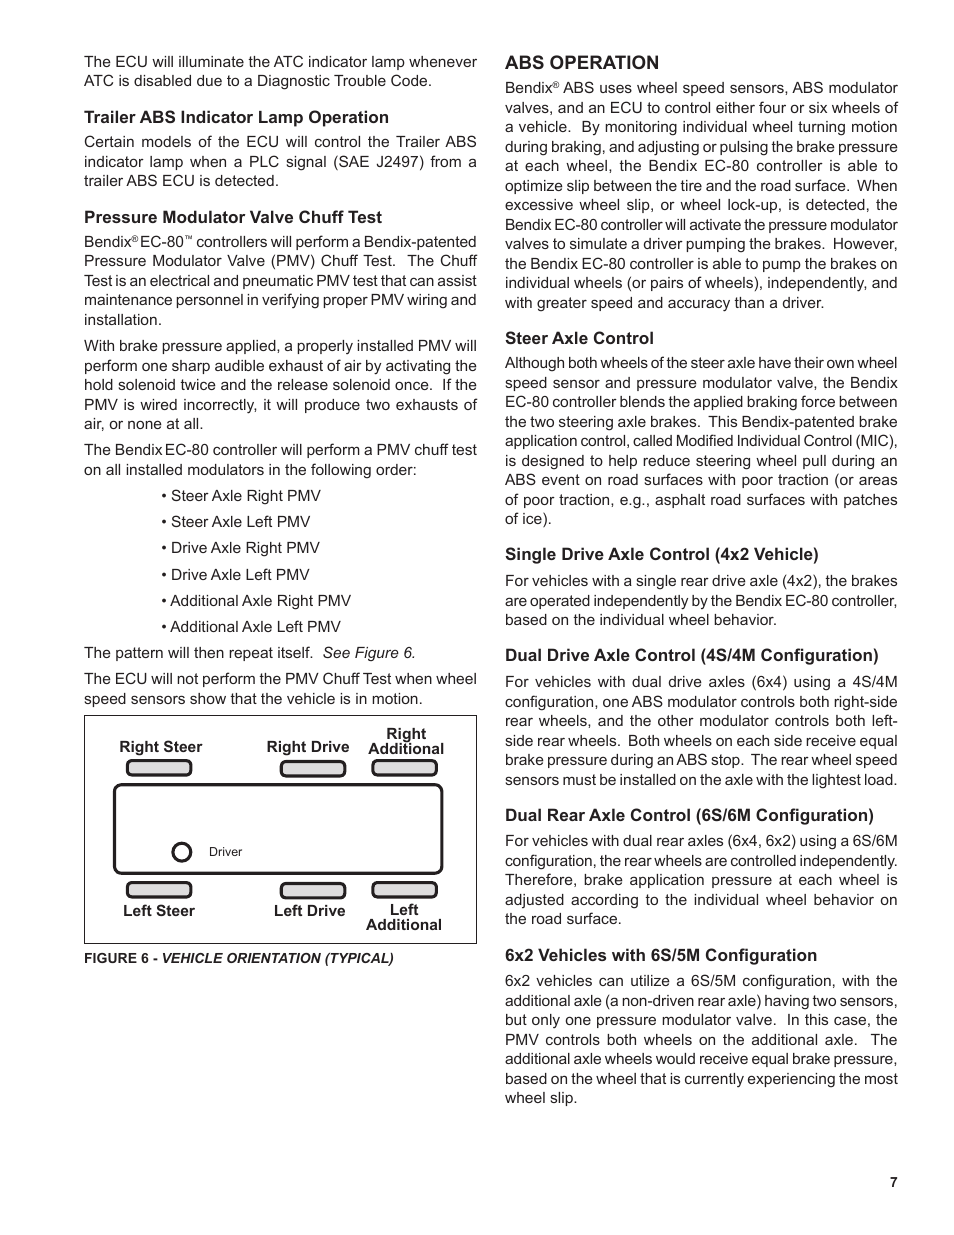 Bendix Commercial Vehicle Systems EC-80 ABS ATC SD User Manual | Page 7 /